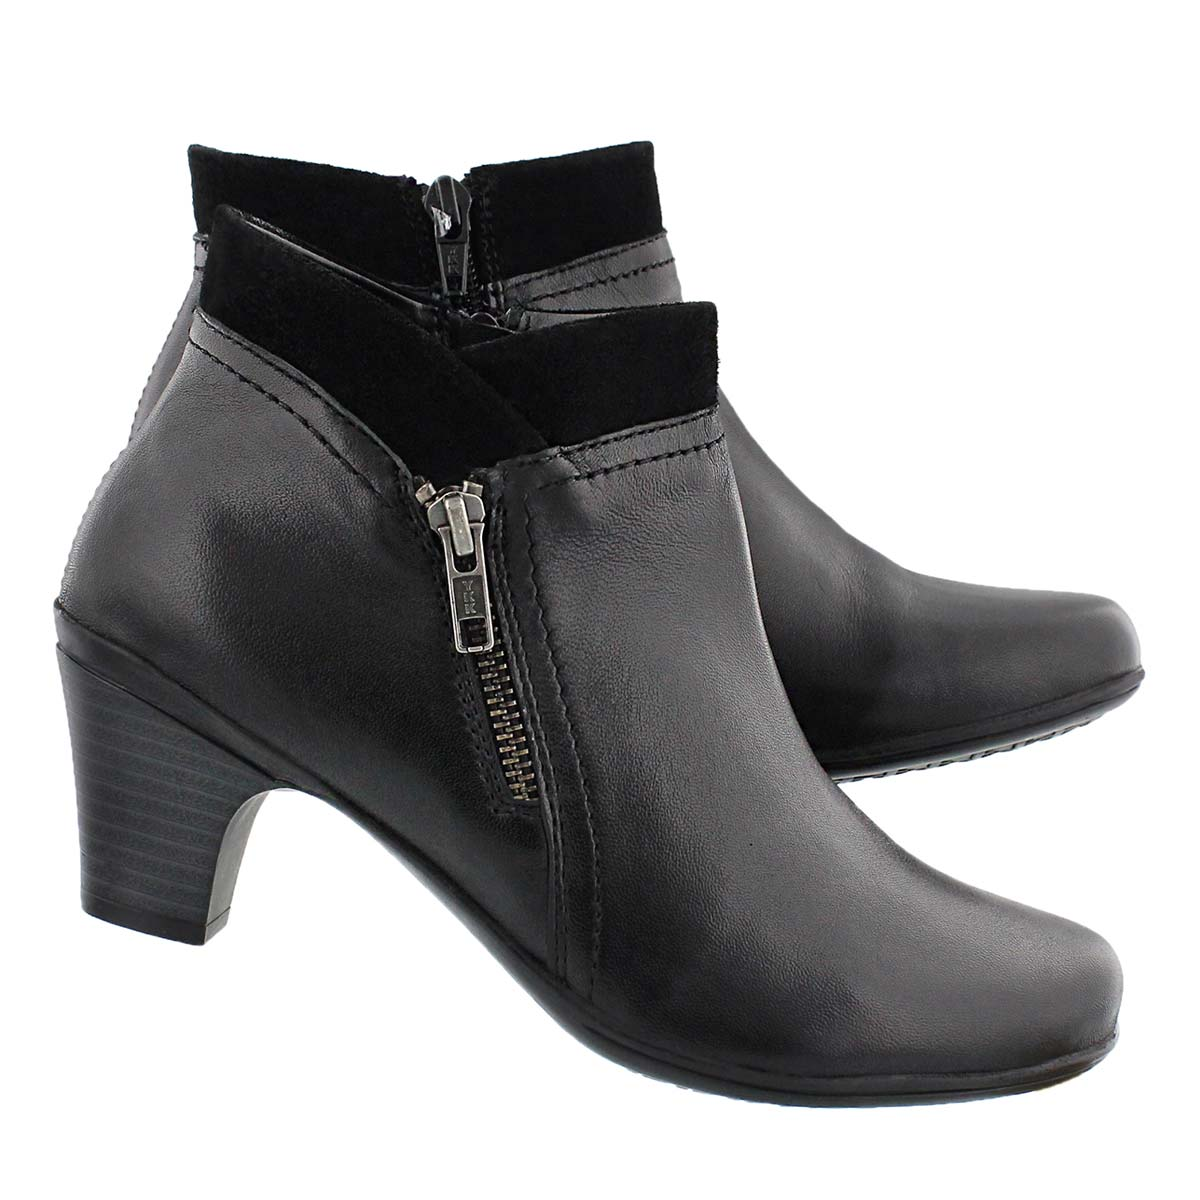 Lds Deidre black dress bootie